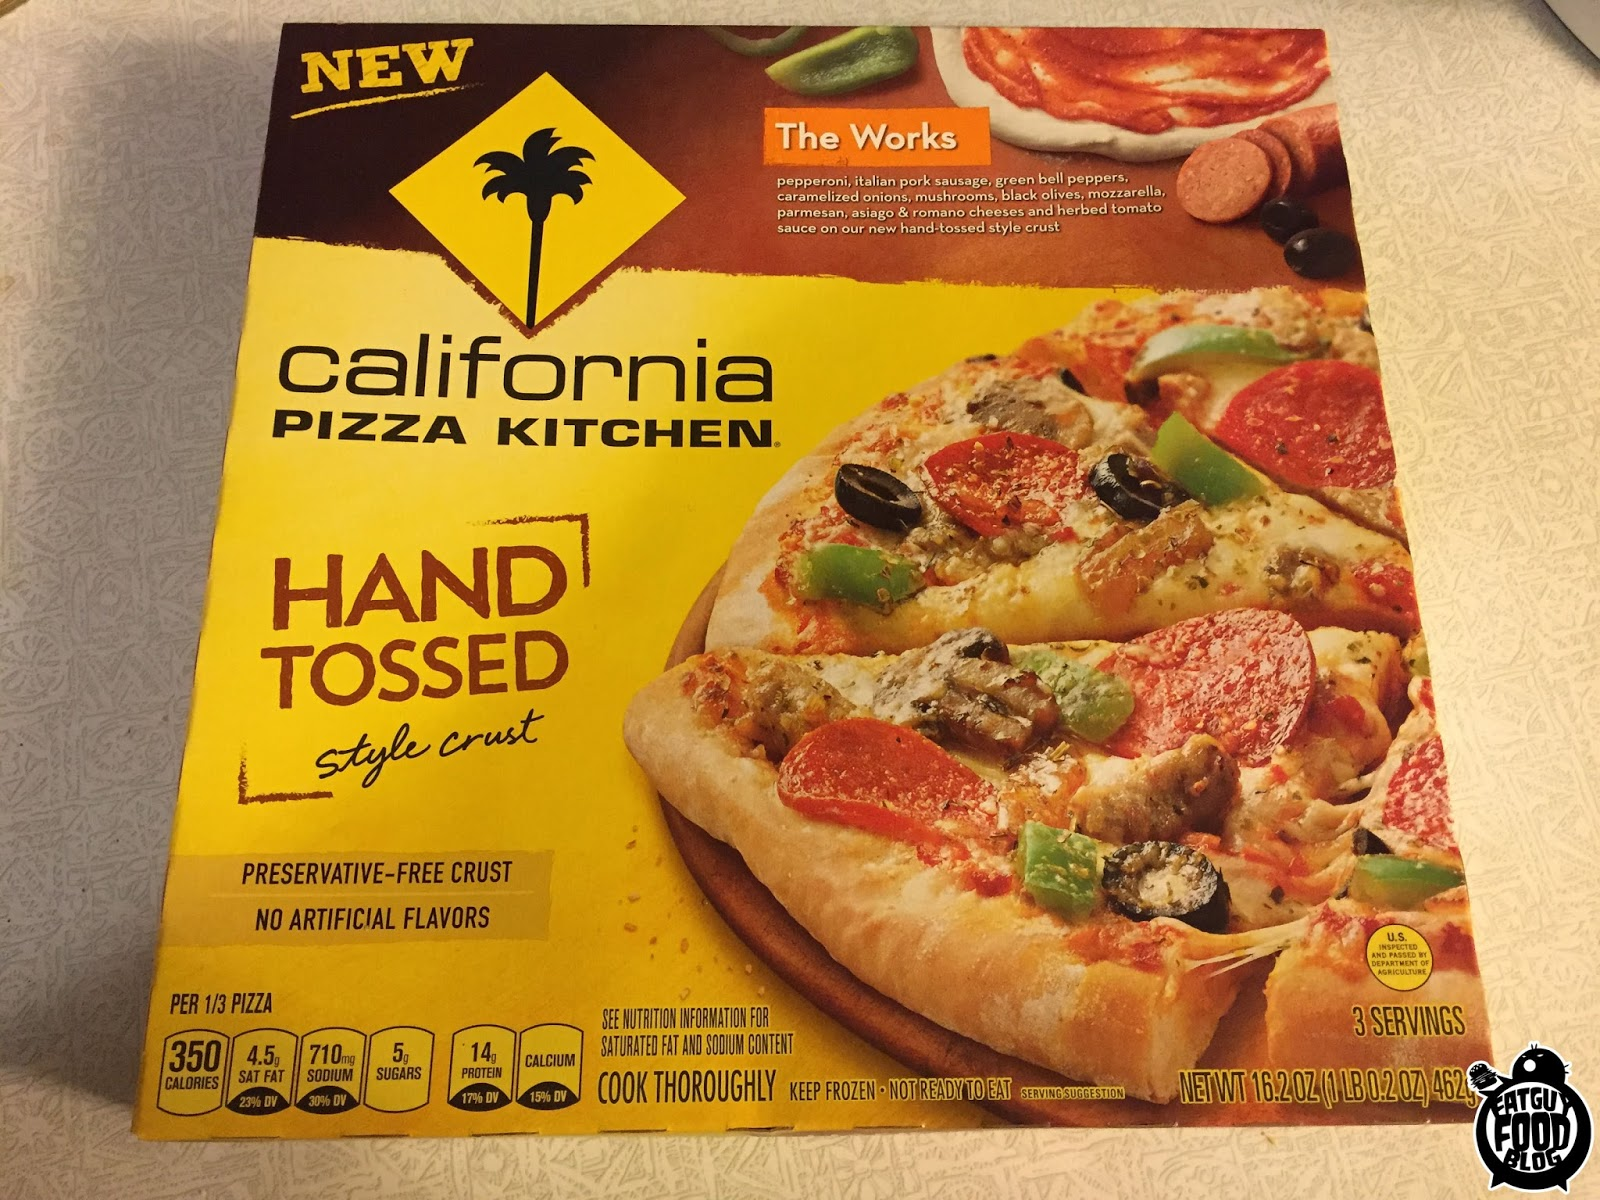 FATGUYFOODBLOG: California Pizza Kitchen new flavors! The Works ...